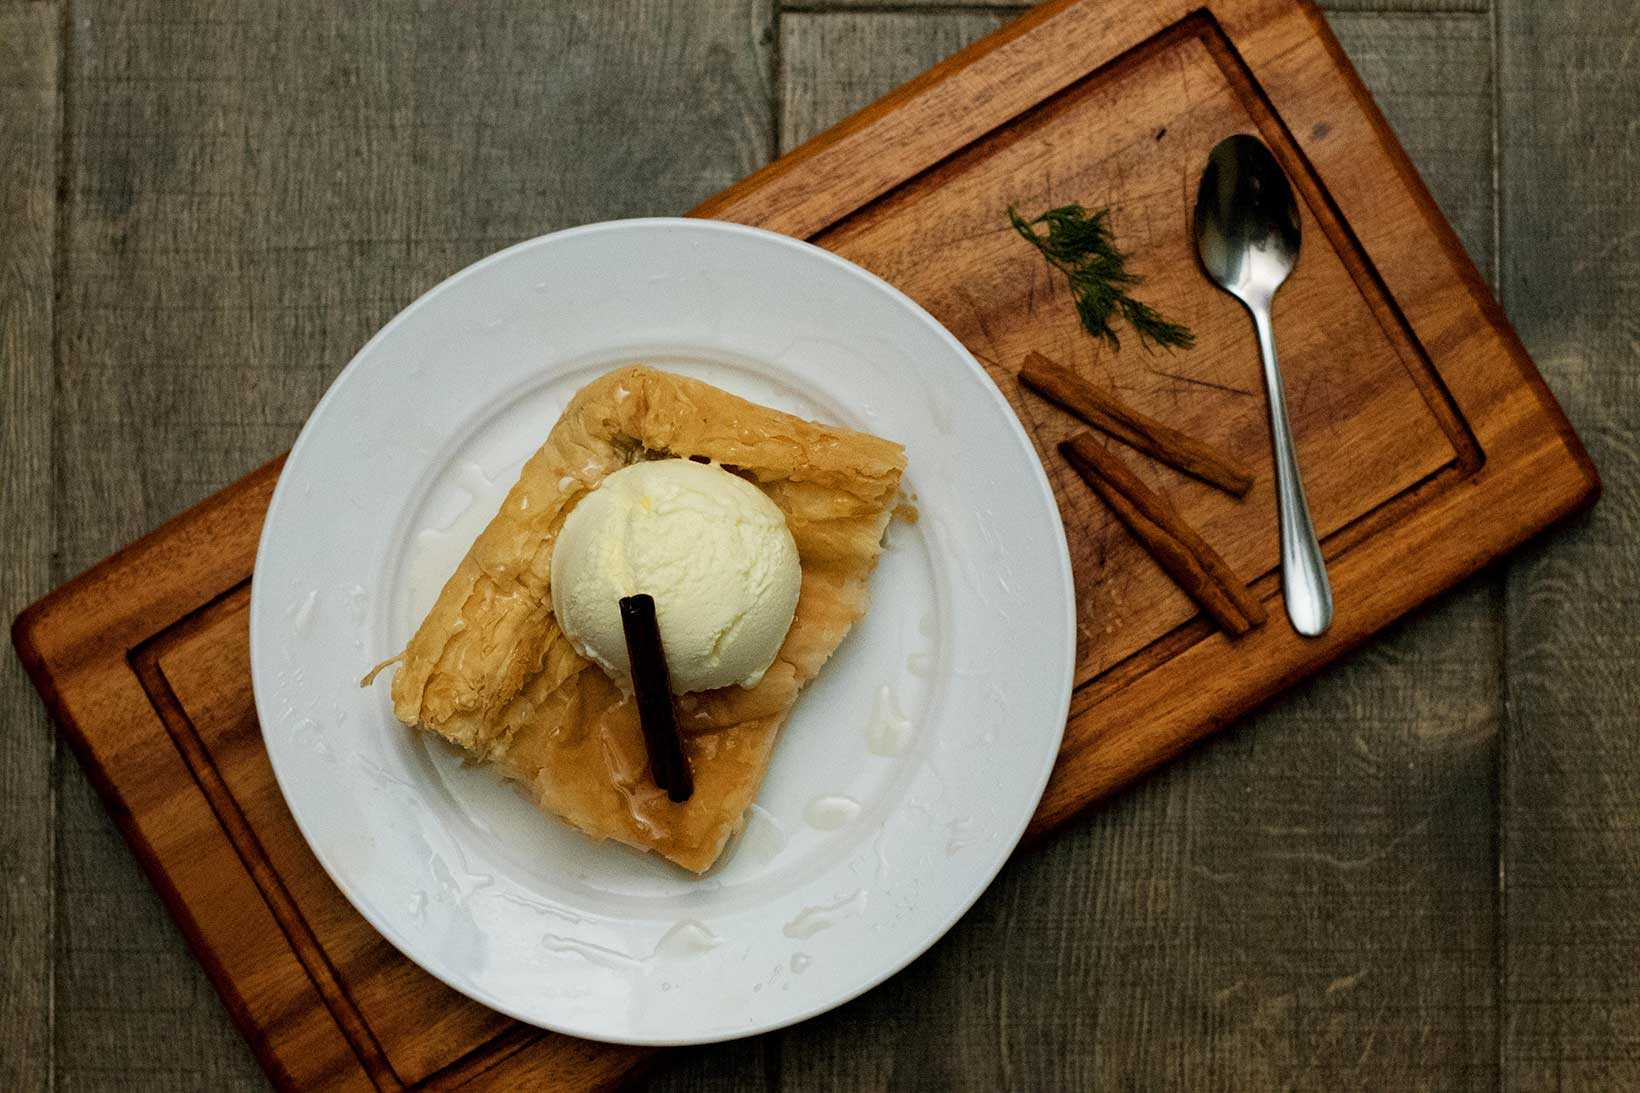 Creamy custard wrapped in phyllo pastry. Served with Honey syrup and Vanilla Ice cream.